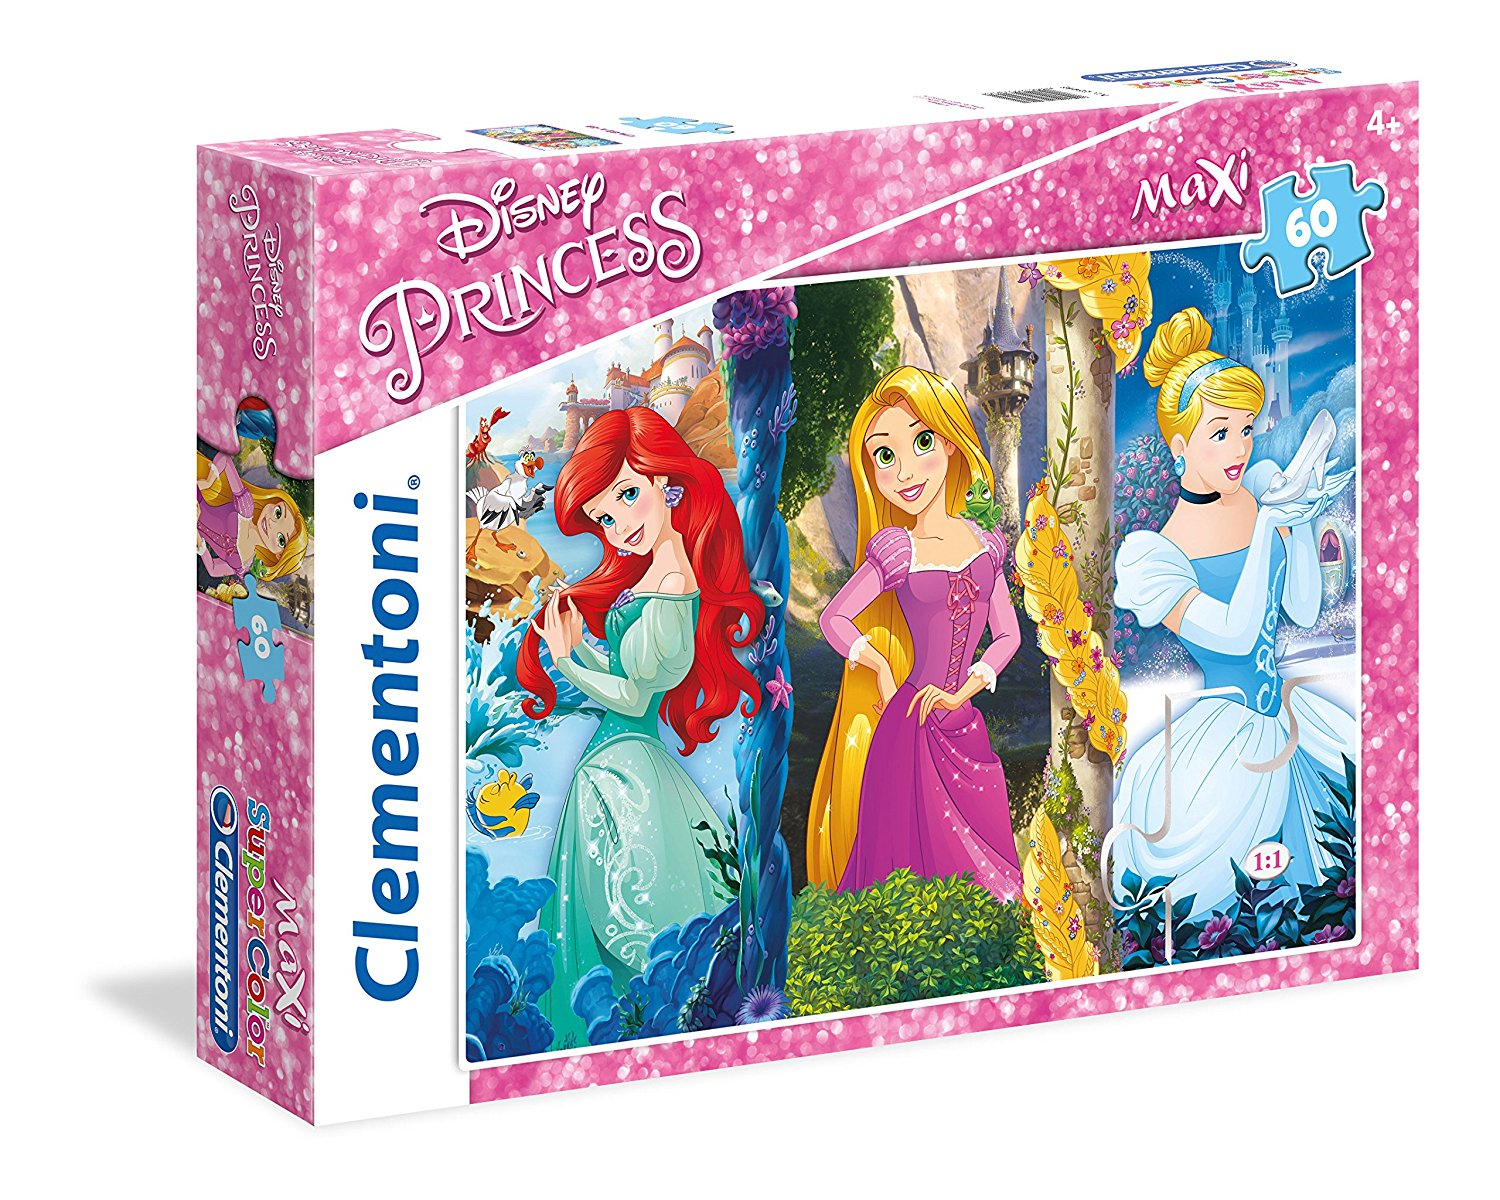 pi ces xxl disney princess 60 teile clementoni puzzle acheter en ligne. Black Bedroom Furniture Sets. Home Design Ideas